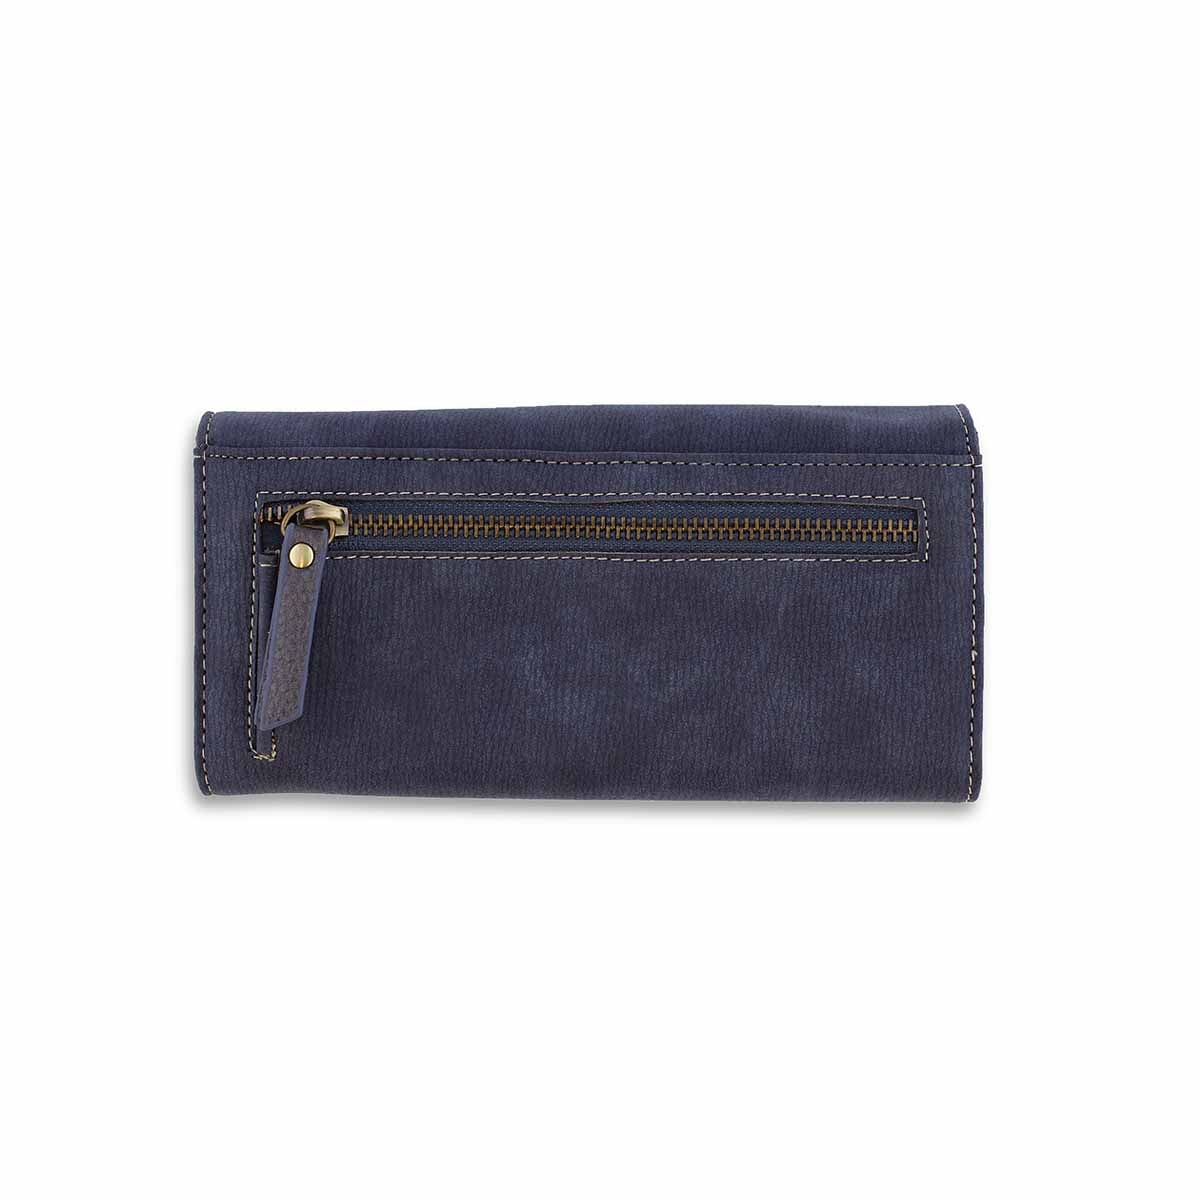 Lds Frost Collection navy deluxe clutch